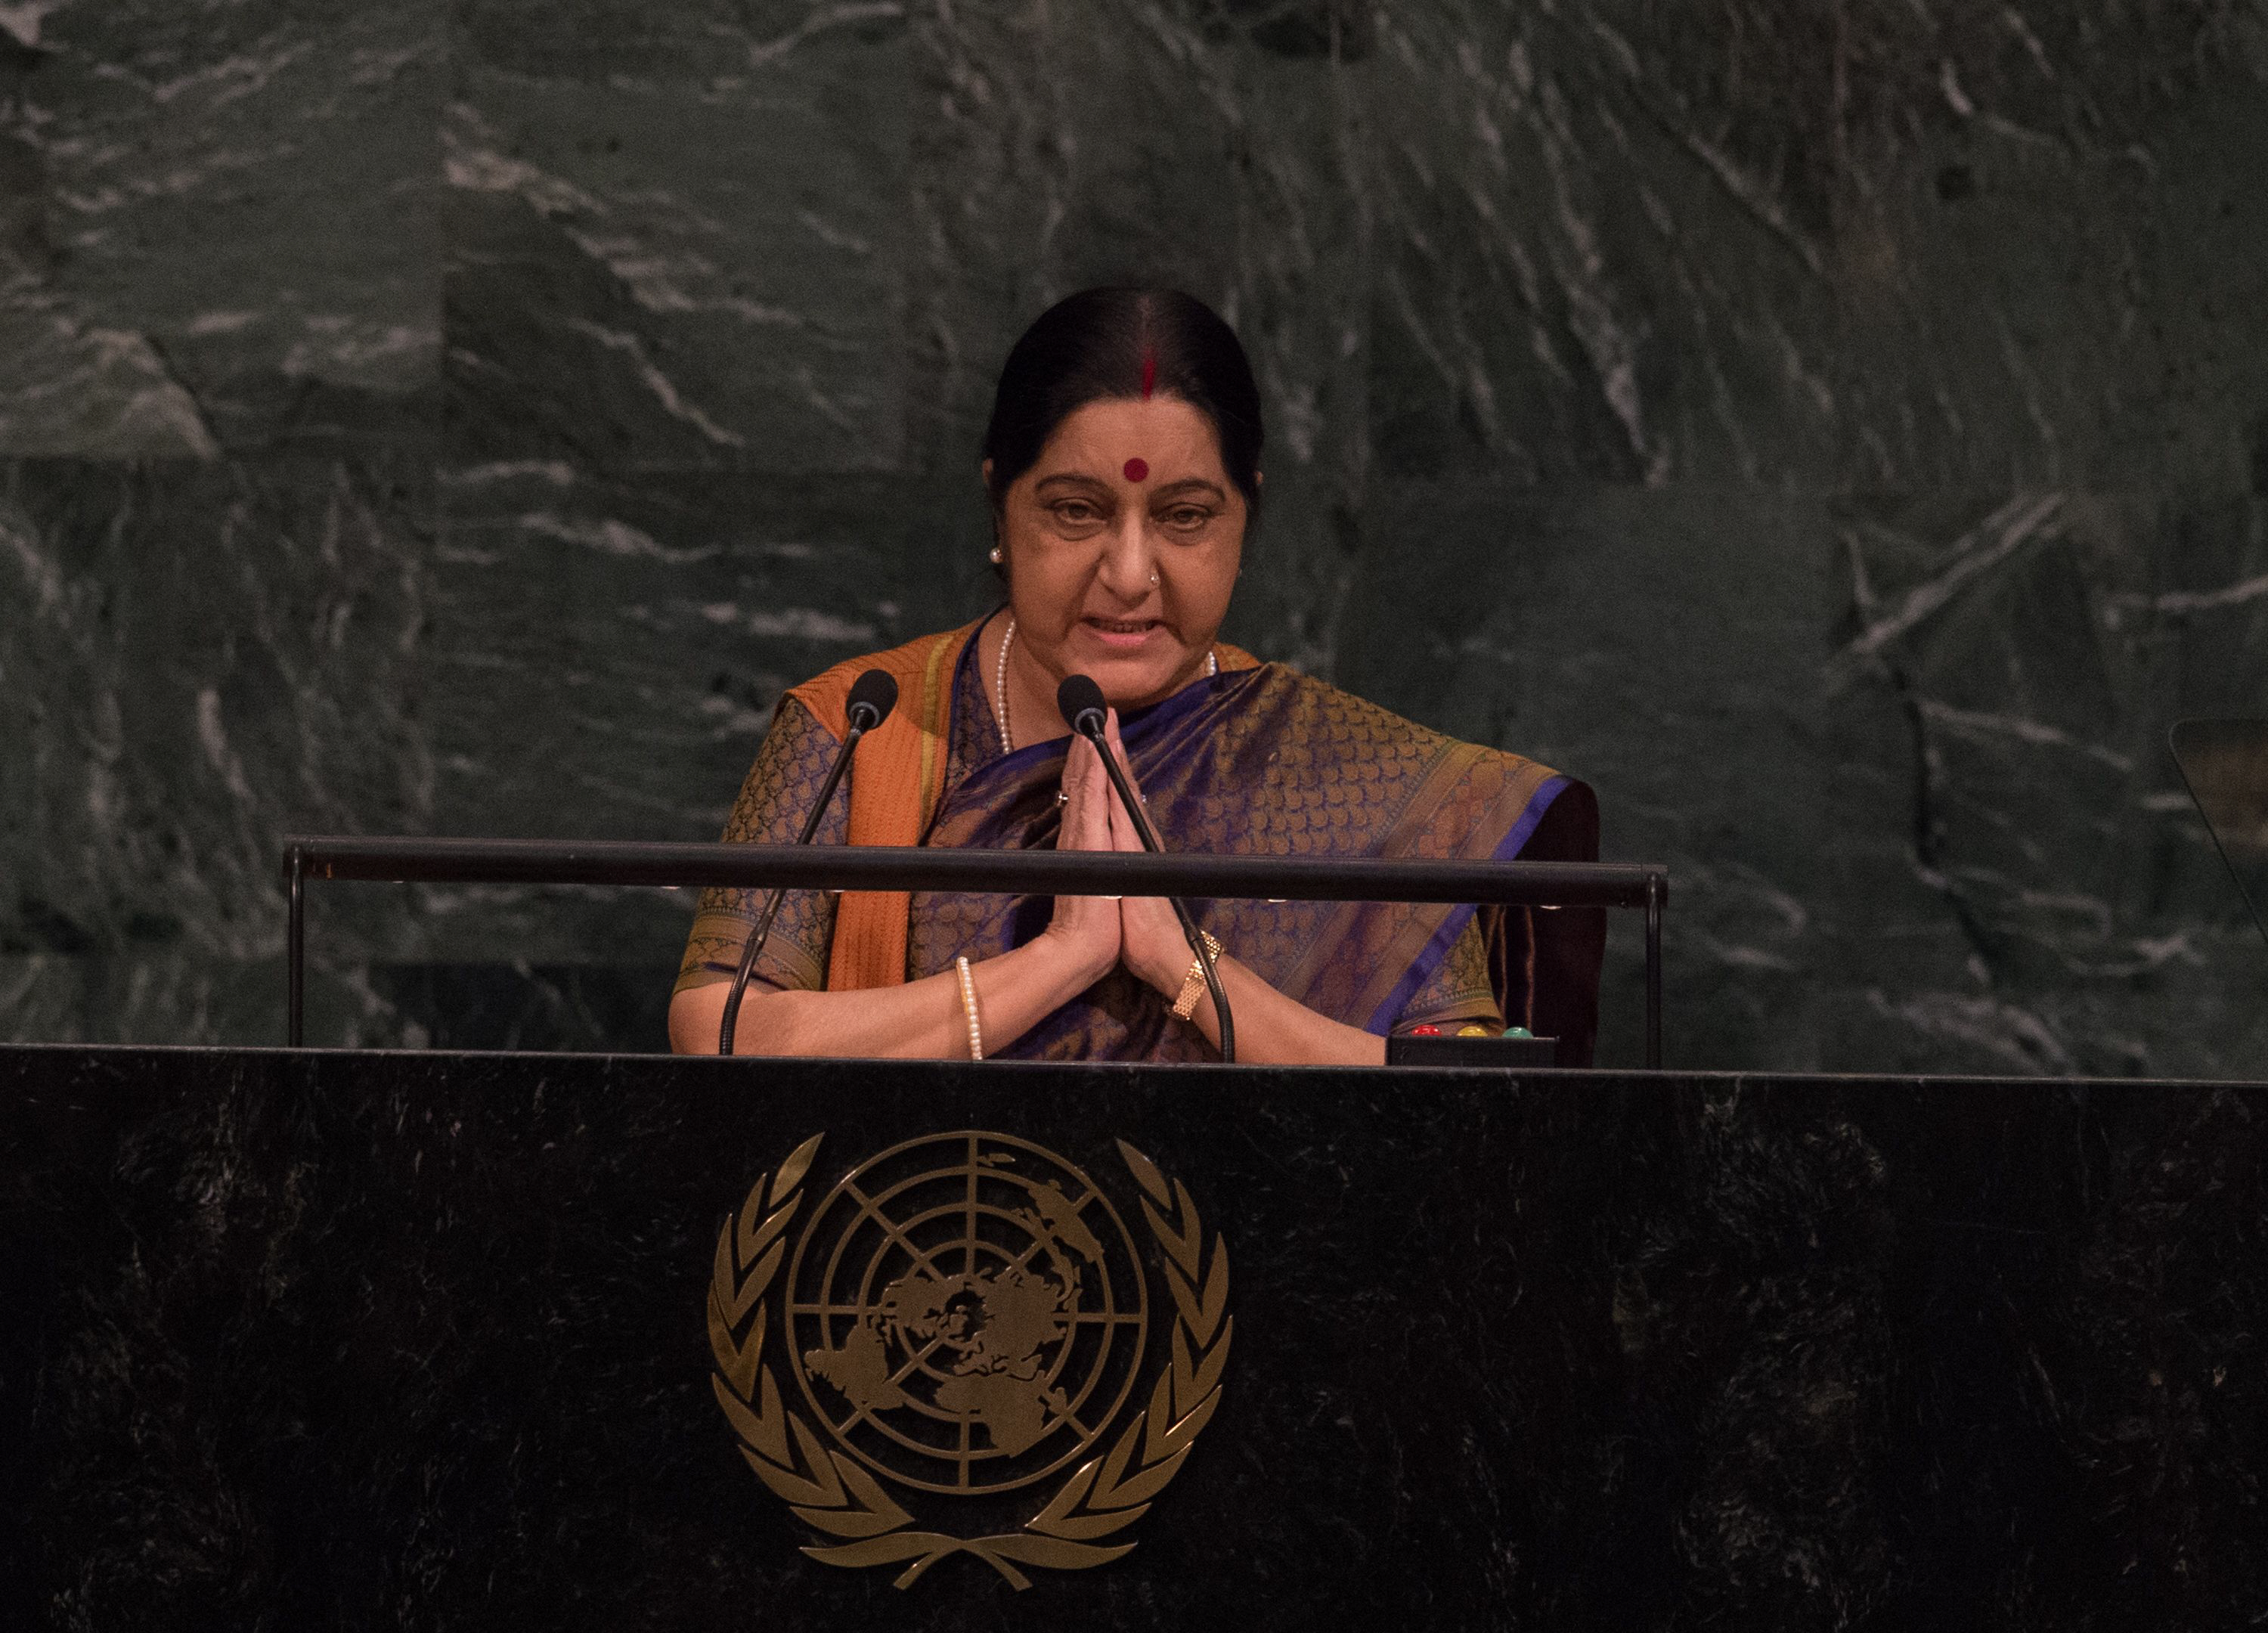 India Minister of External Affairs Sushma Swaraj addresses the 72nd Session of the United Nations General assembly at the UN headquarters in New York on September 23, 2017. PHOTO: AFP